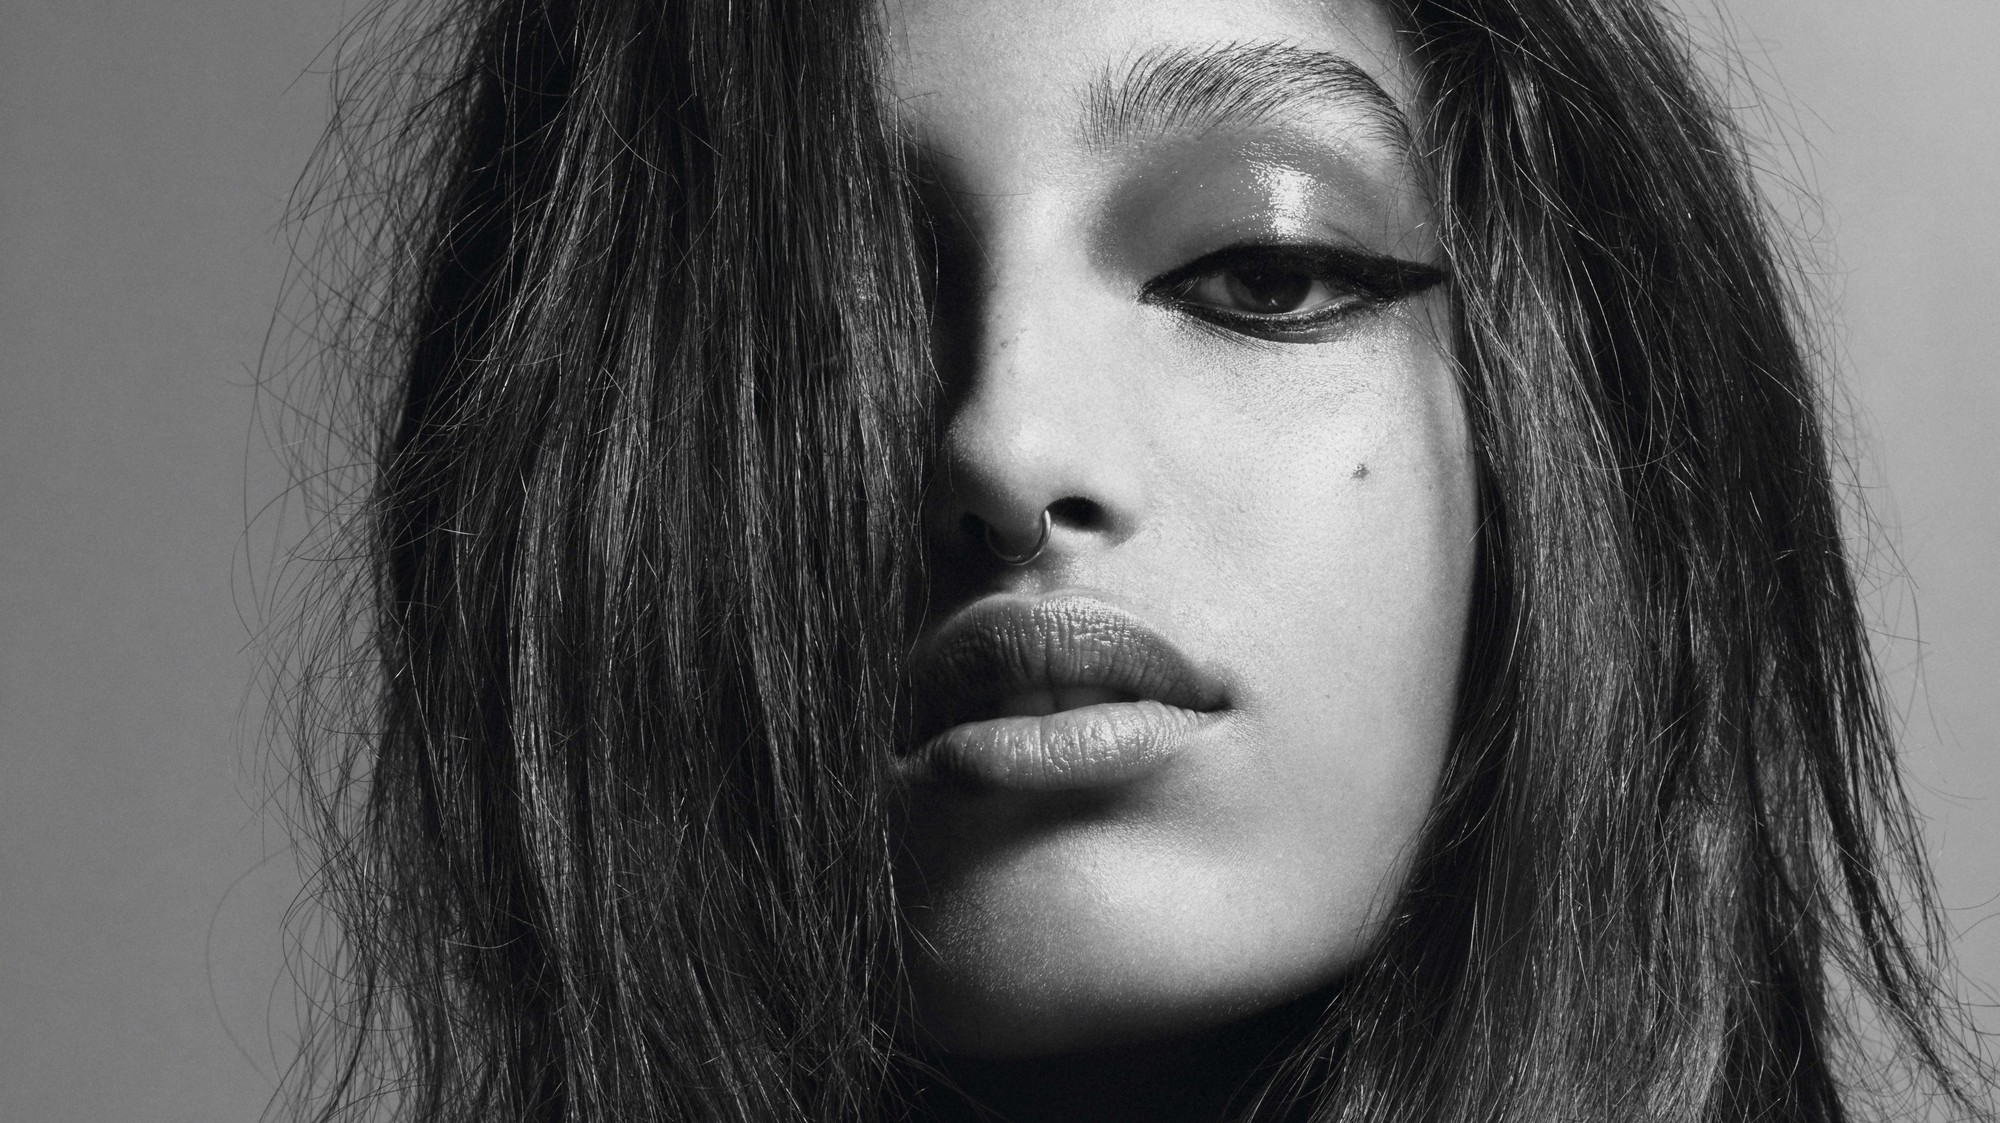 Mona Tougaard cover story, interview and photoshoot i-D